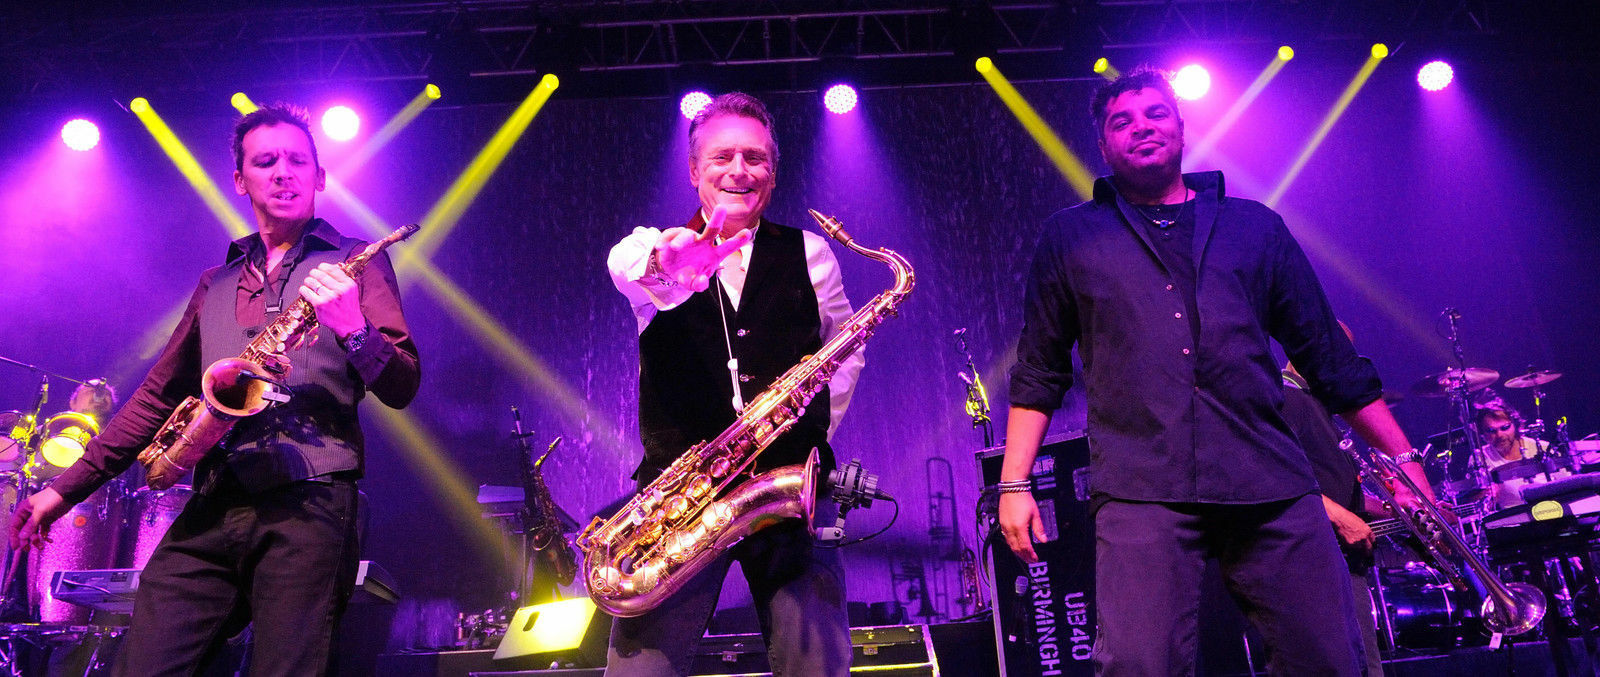 UB40 with special guest the Lazy Man Dub Band